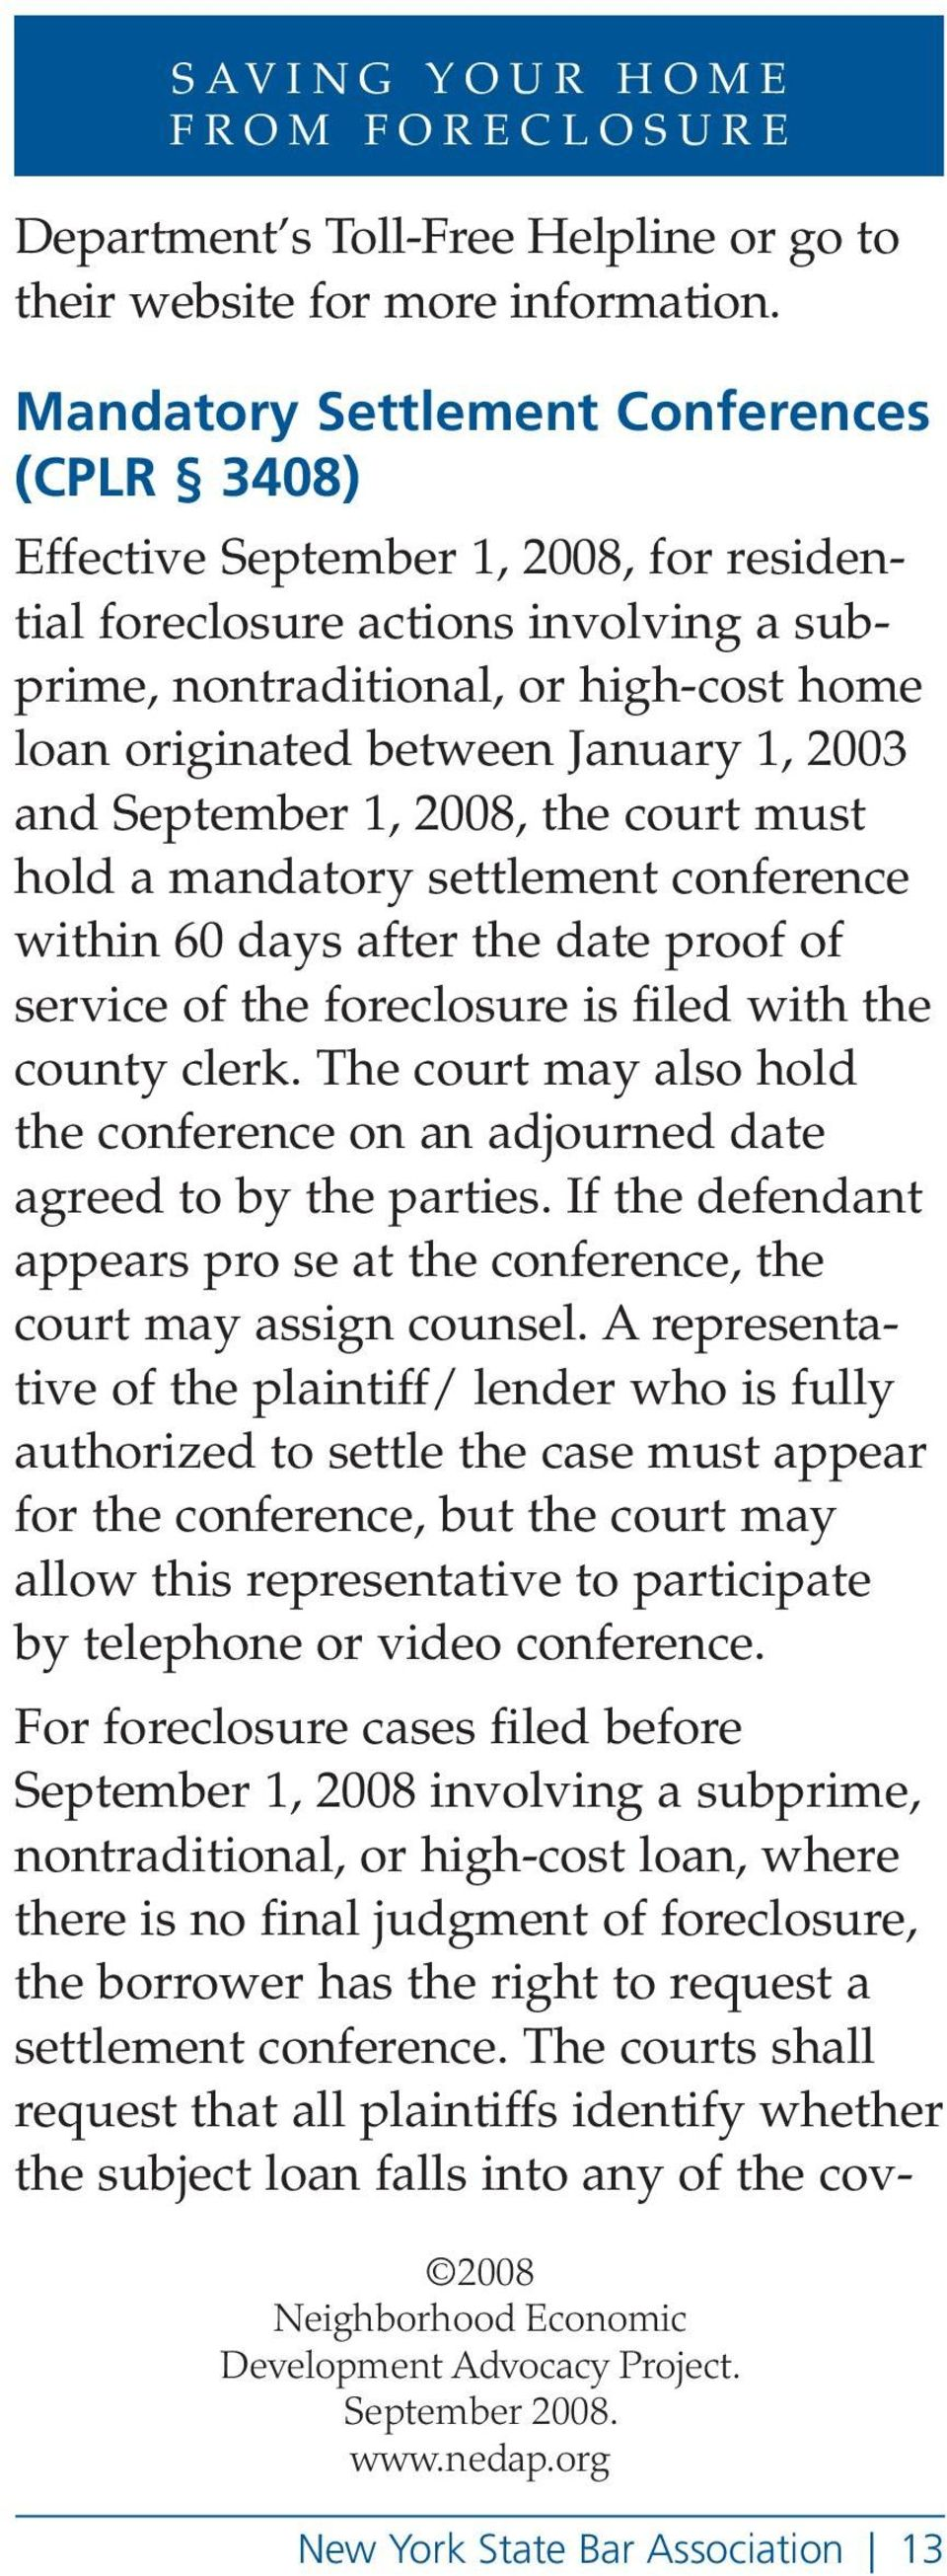 1, 2003 and September 1, 2008, the court must hold a mandatory settlement conference within 60 days after the date proof of service of the foreclosure is filed with the county clerk.